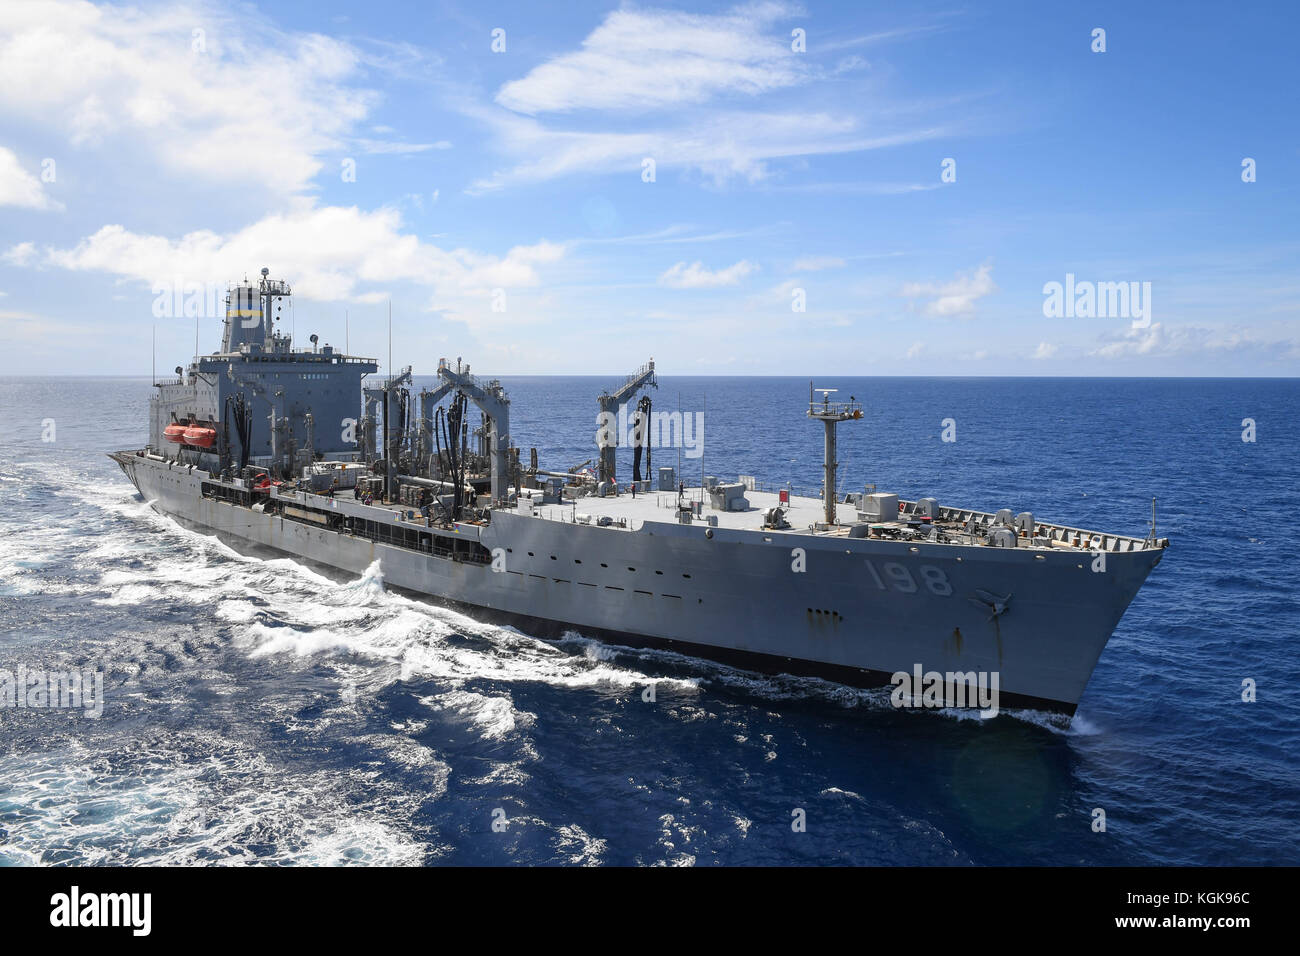 The Henry J. Kaiser-class fleet resupply oiler USNS Big Horn (T-AO 198) is underway in the vicinity - Stock Image